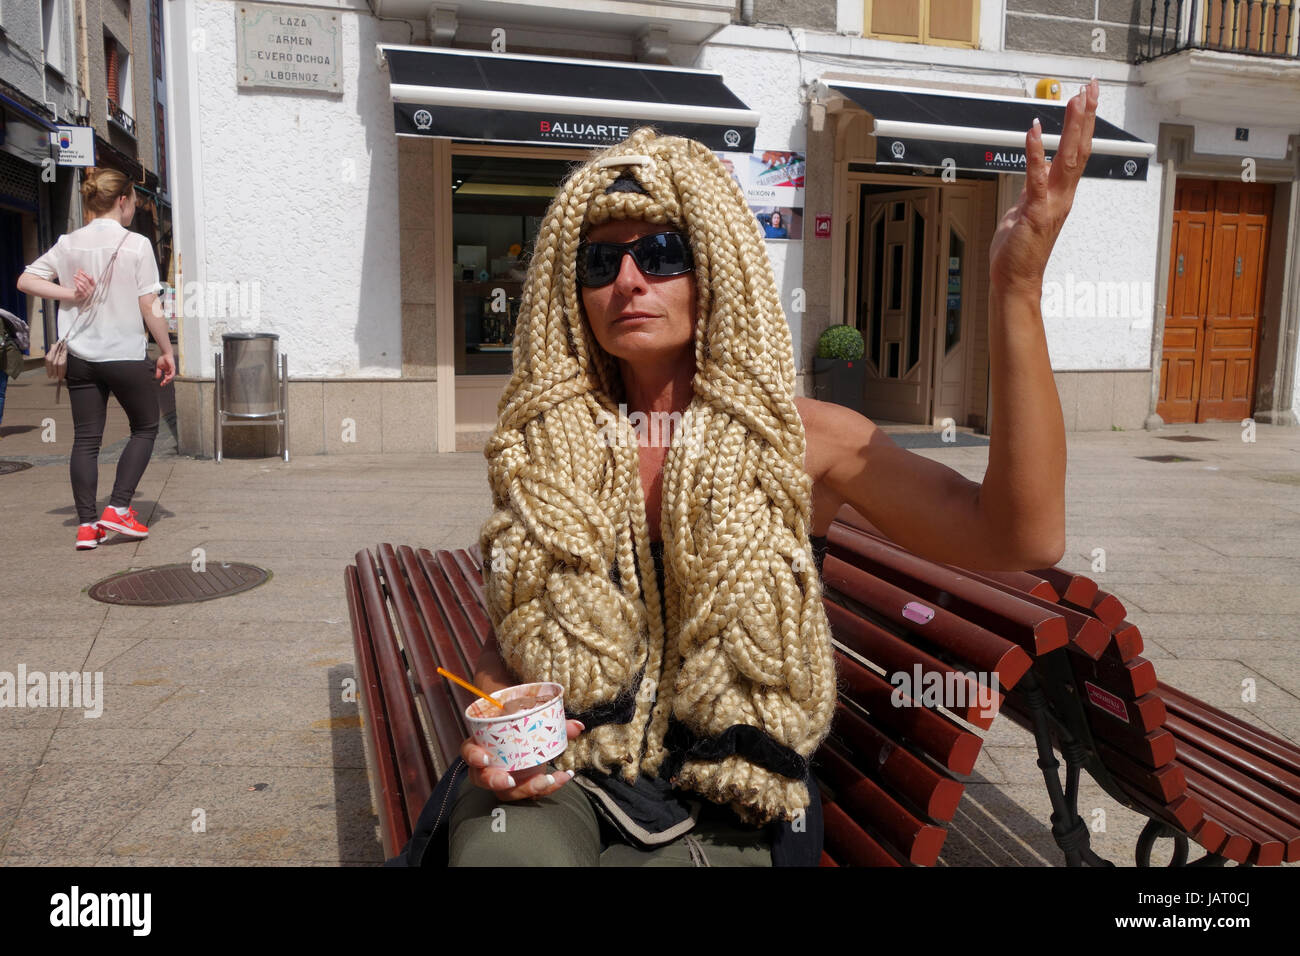 German woman with stunning natural hair braided with wool taking a rest while walking the Camino de Santiago pilgrims - Stock Image